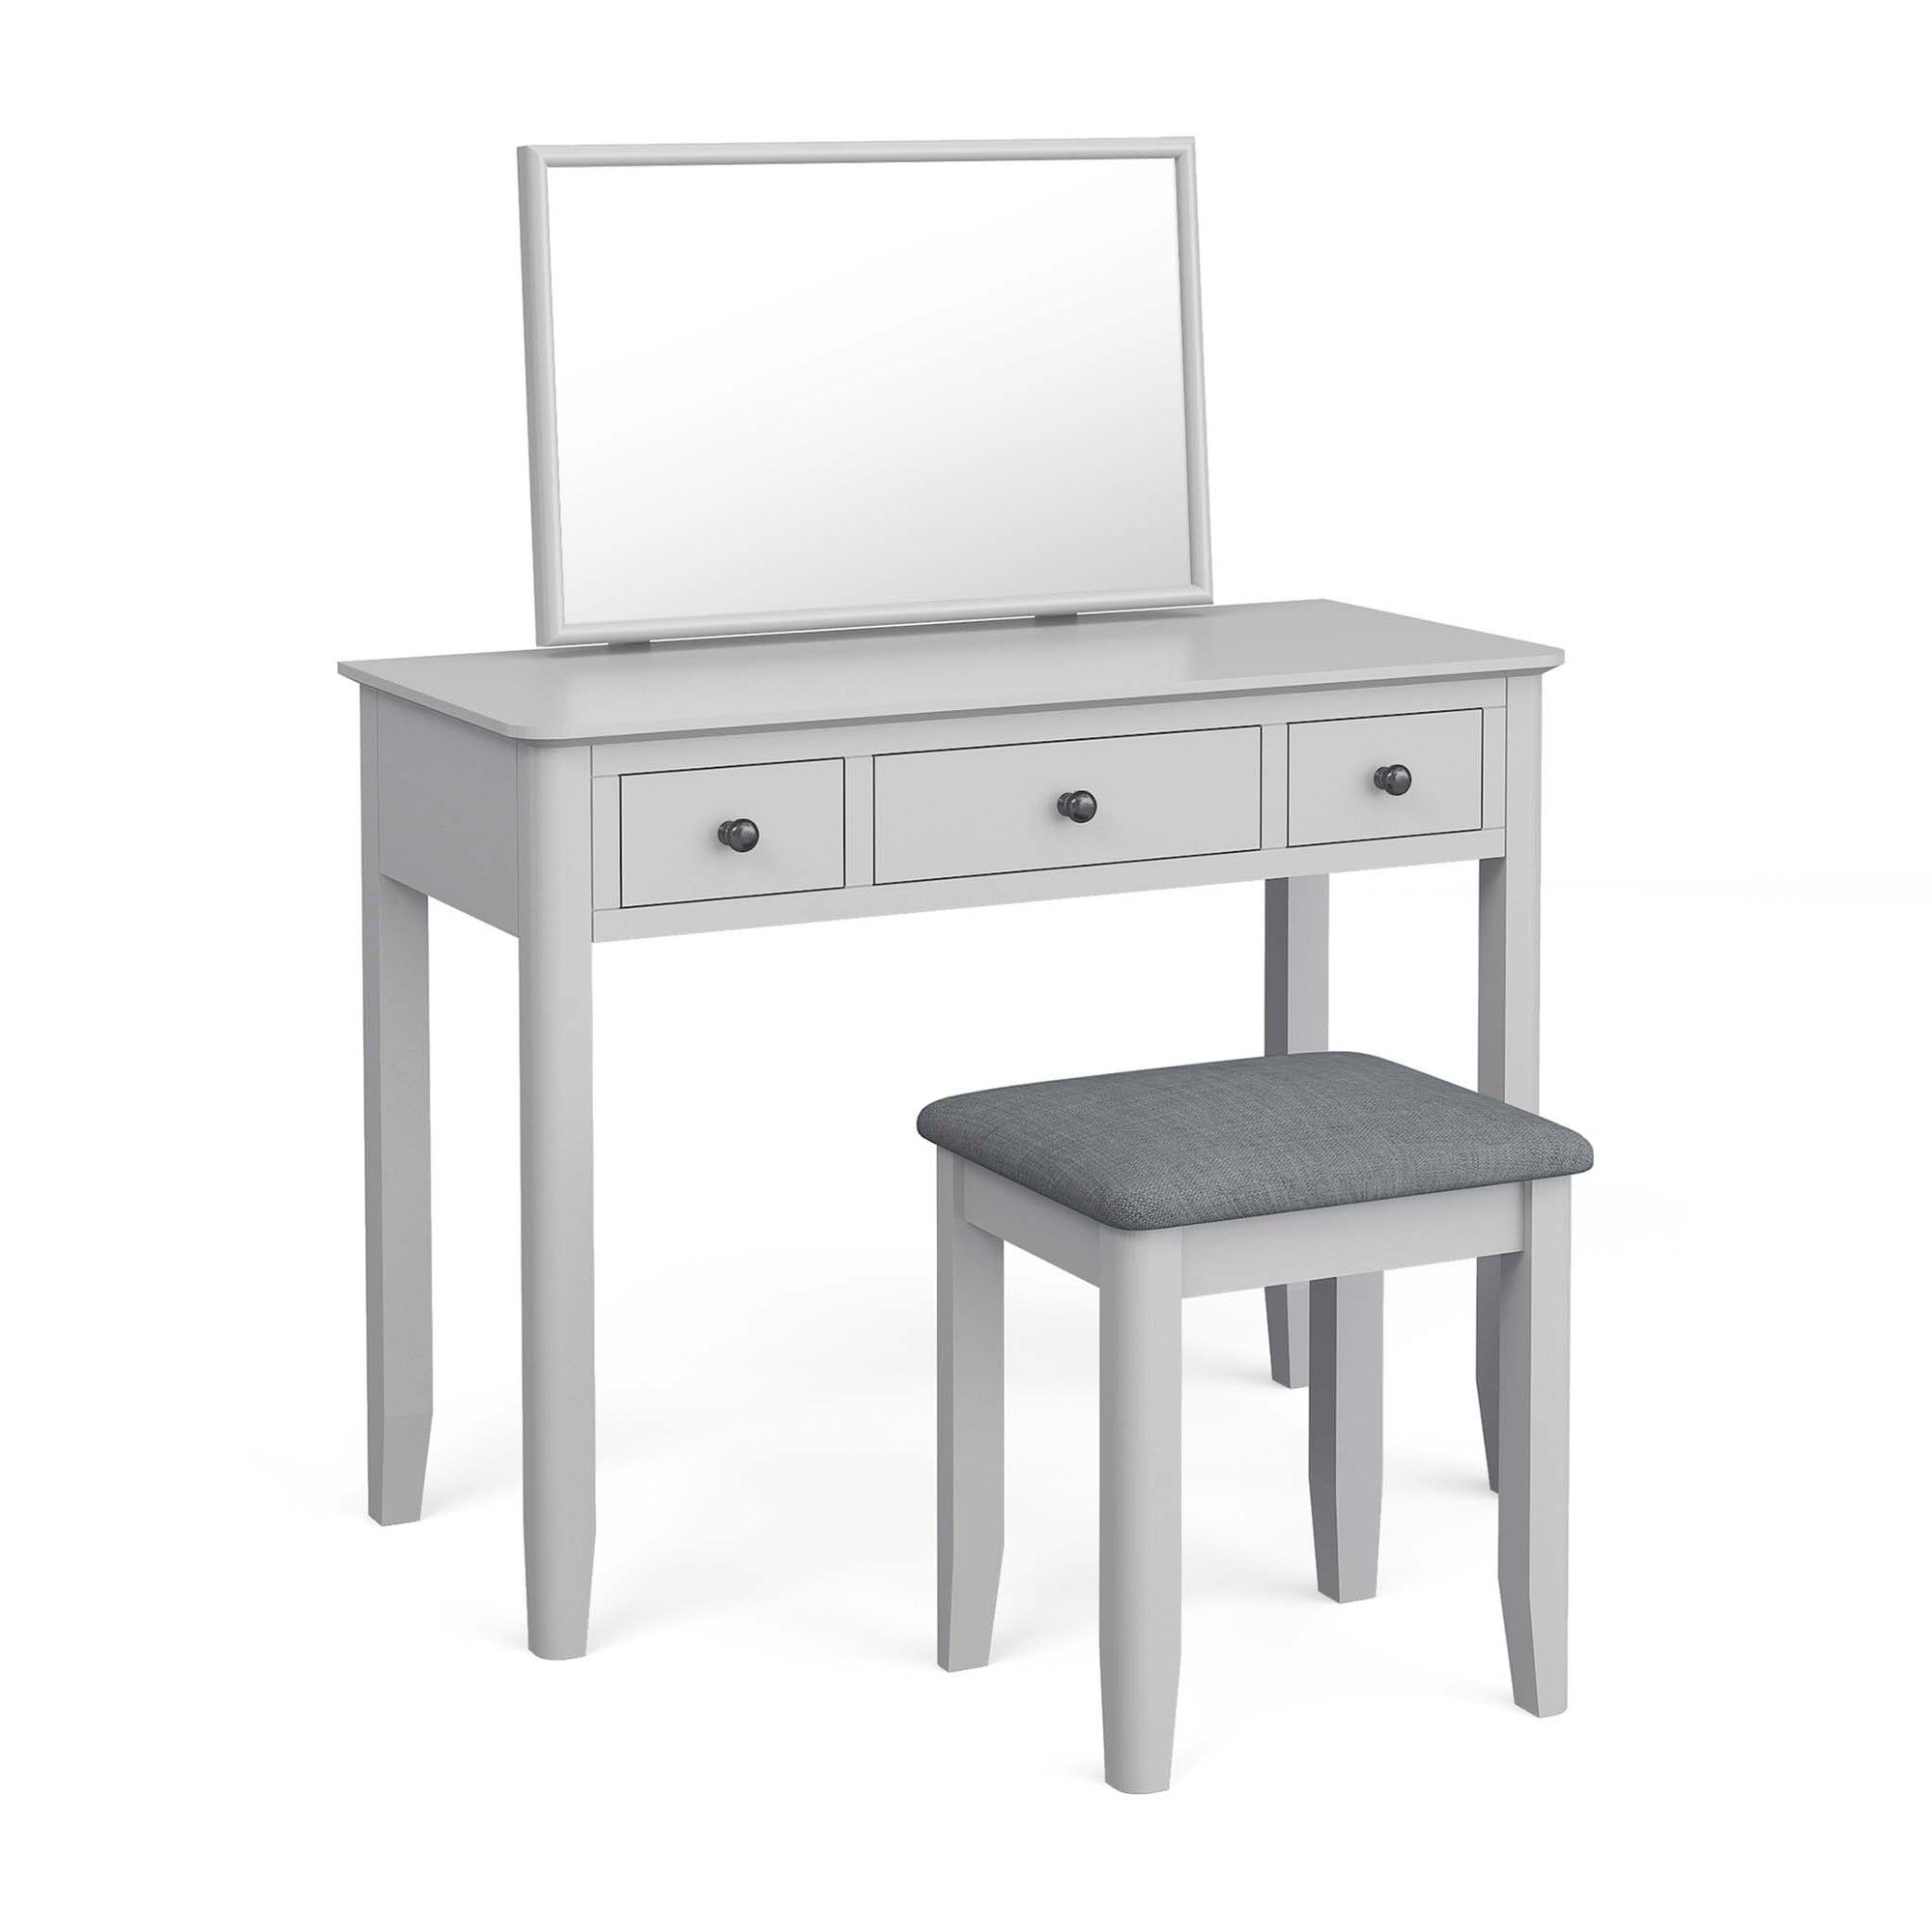 Elgin Dressing Table Set with Vanity Mirror & Stool by Roseland Furniture